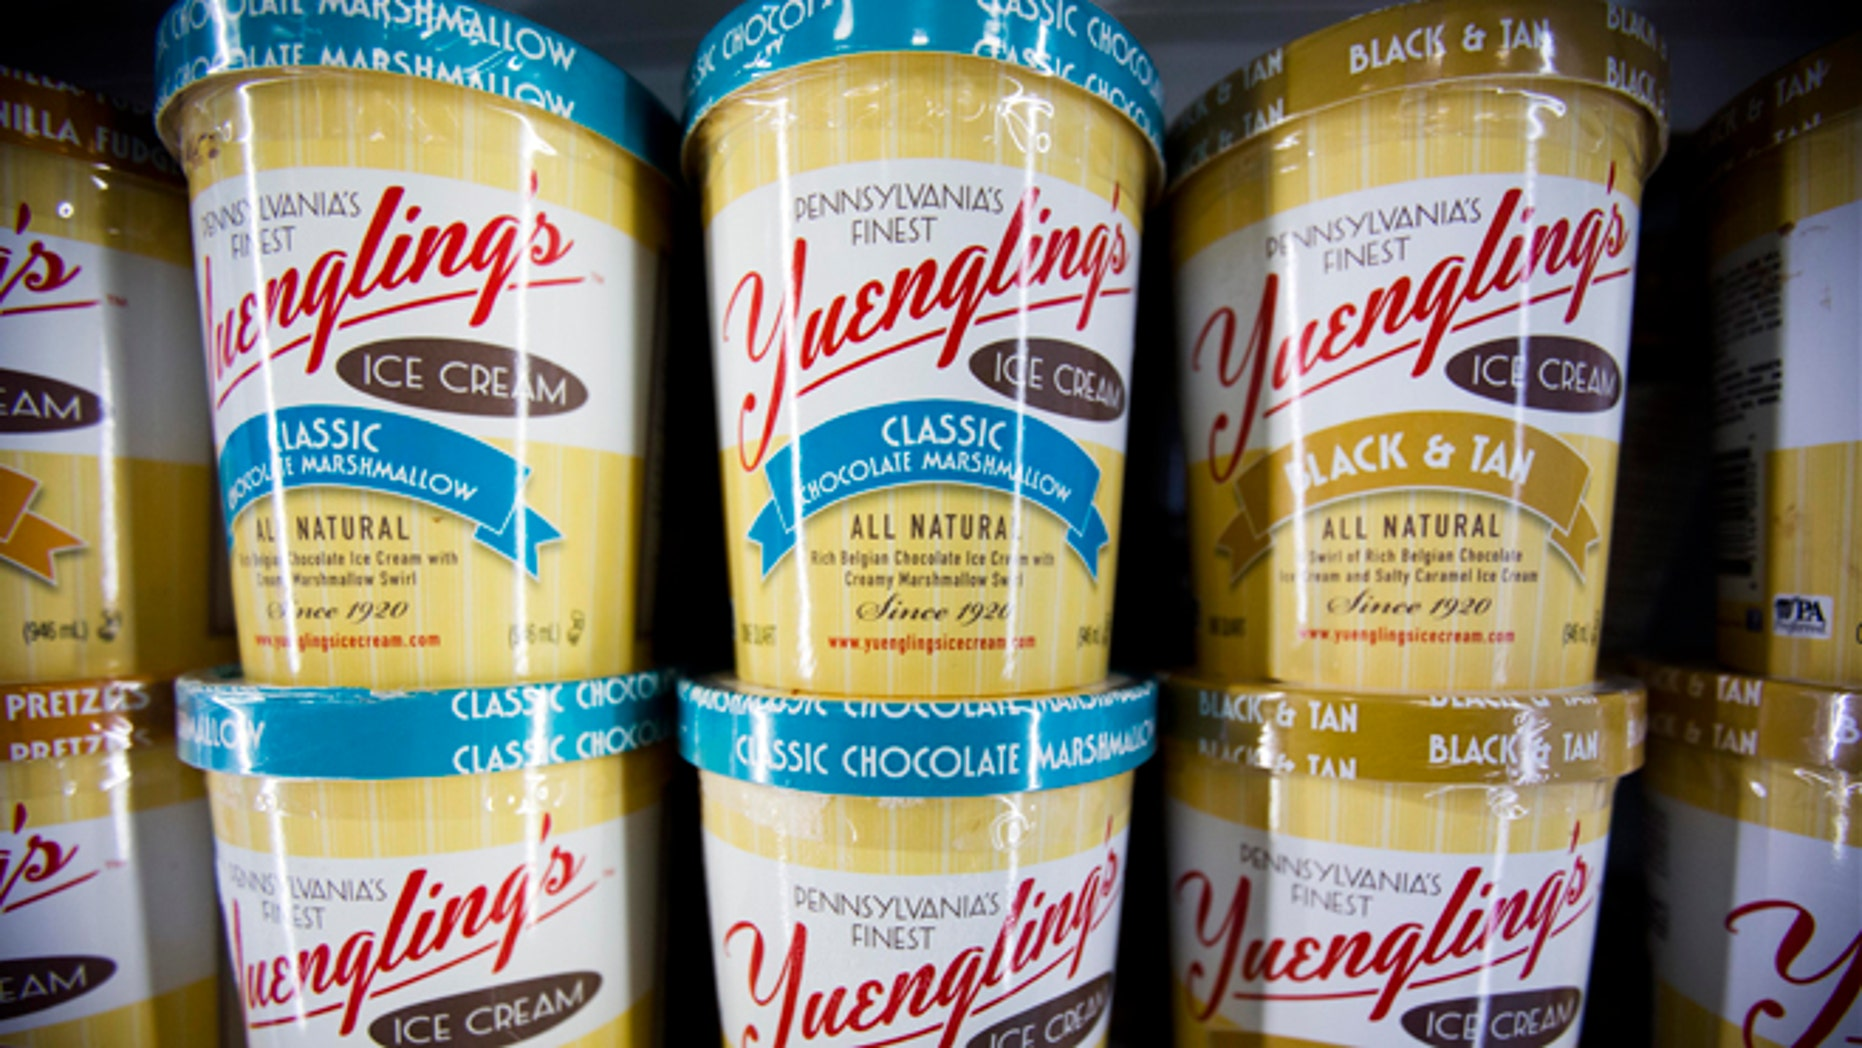 Feb. 10, 2014: Shown are cartons of Yuengling ice cream at a Weis supermarket in Huntingdon Valley, Pa.